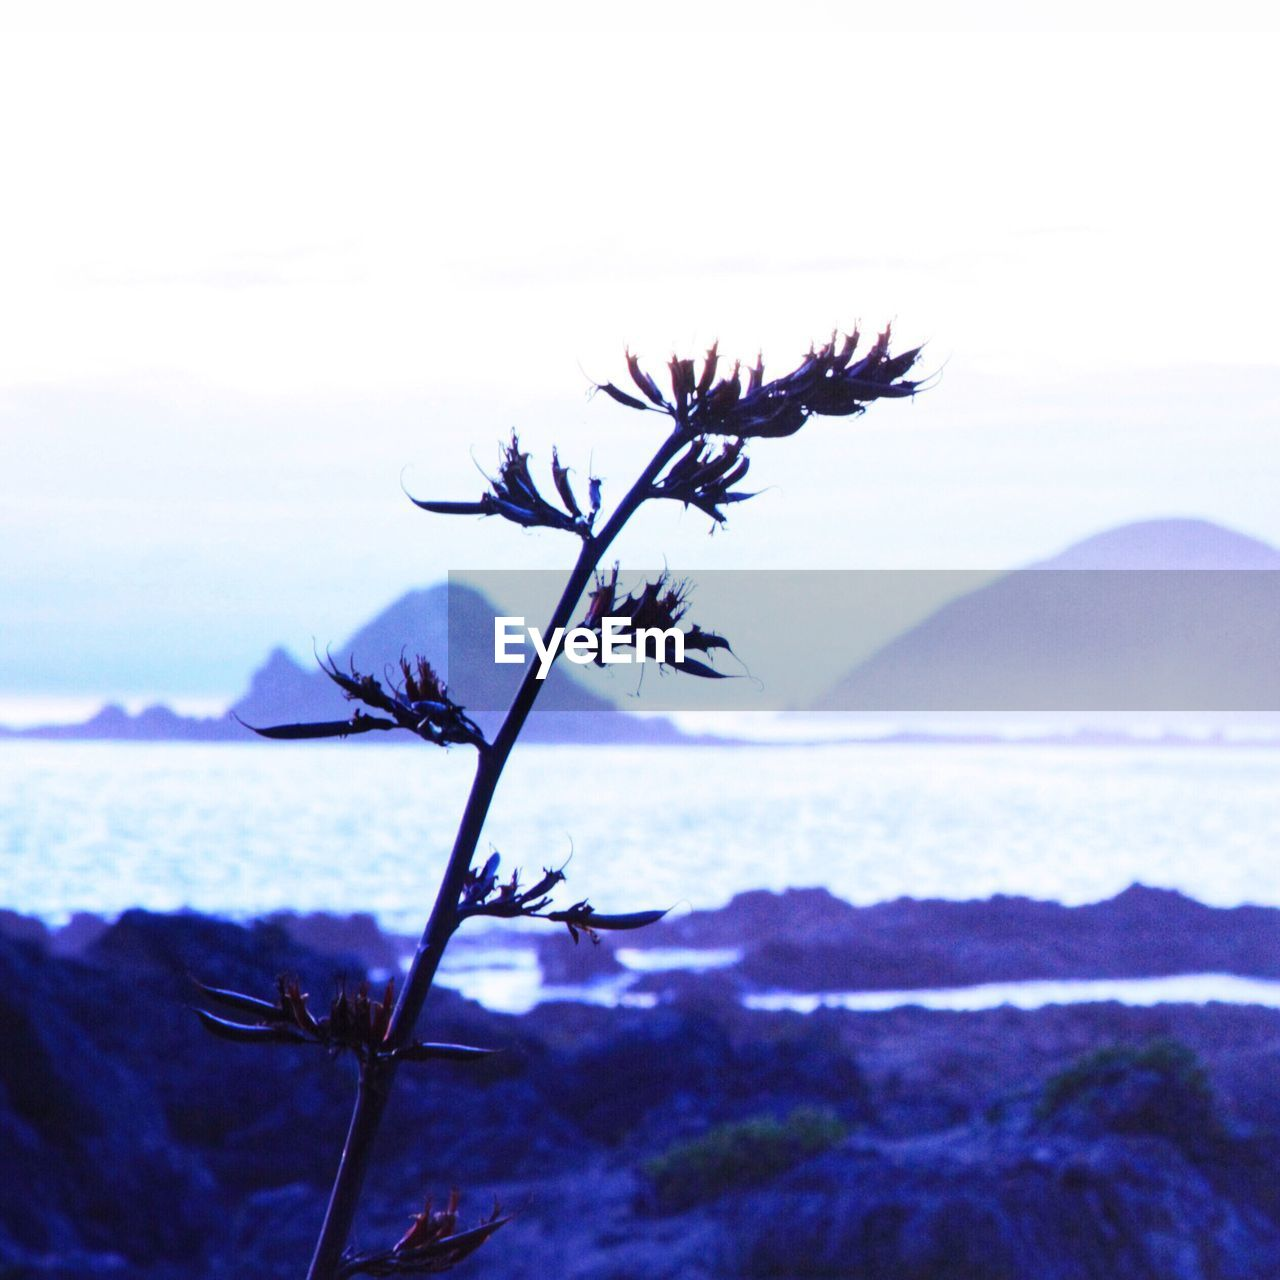 nature, beauty in nature, tranquil scene, scenics, tranquility, outdoors, sky, no people, water, day, sea, focus on foreground, mountain, fragility, landscape, growth, horizon over water, close-up, flower, freshness